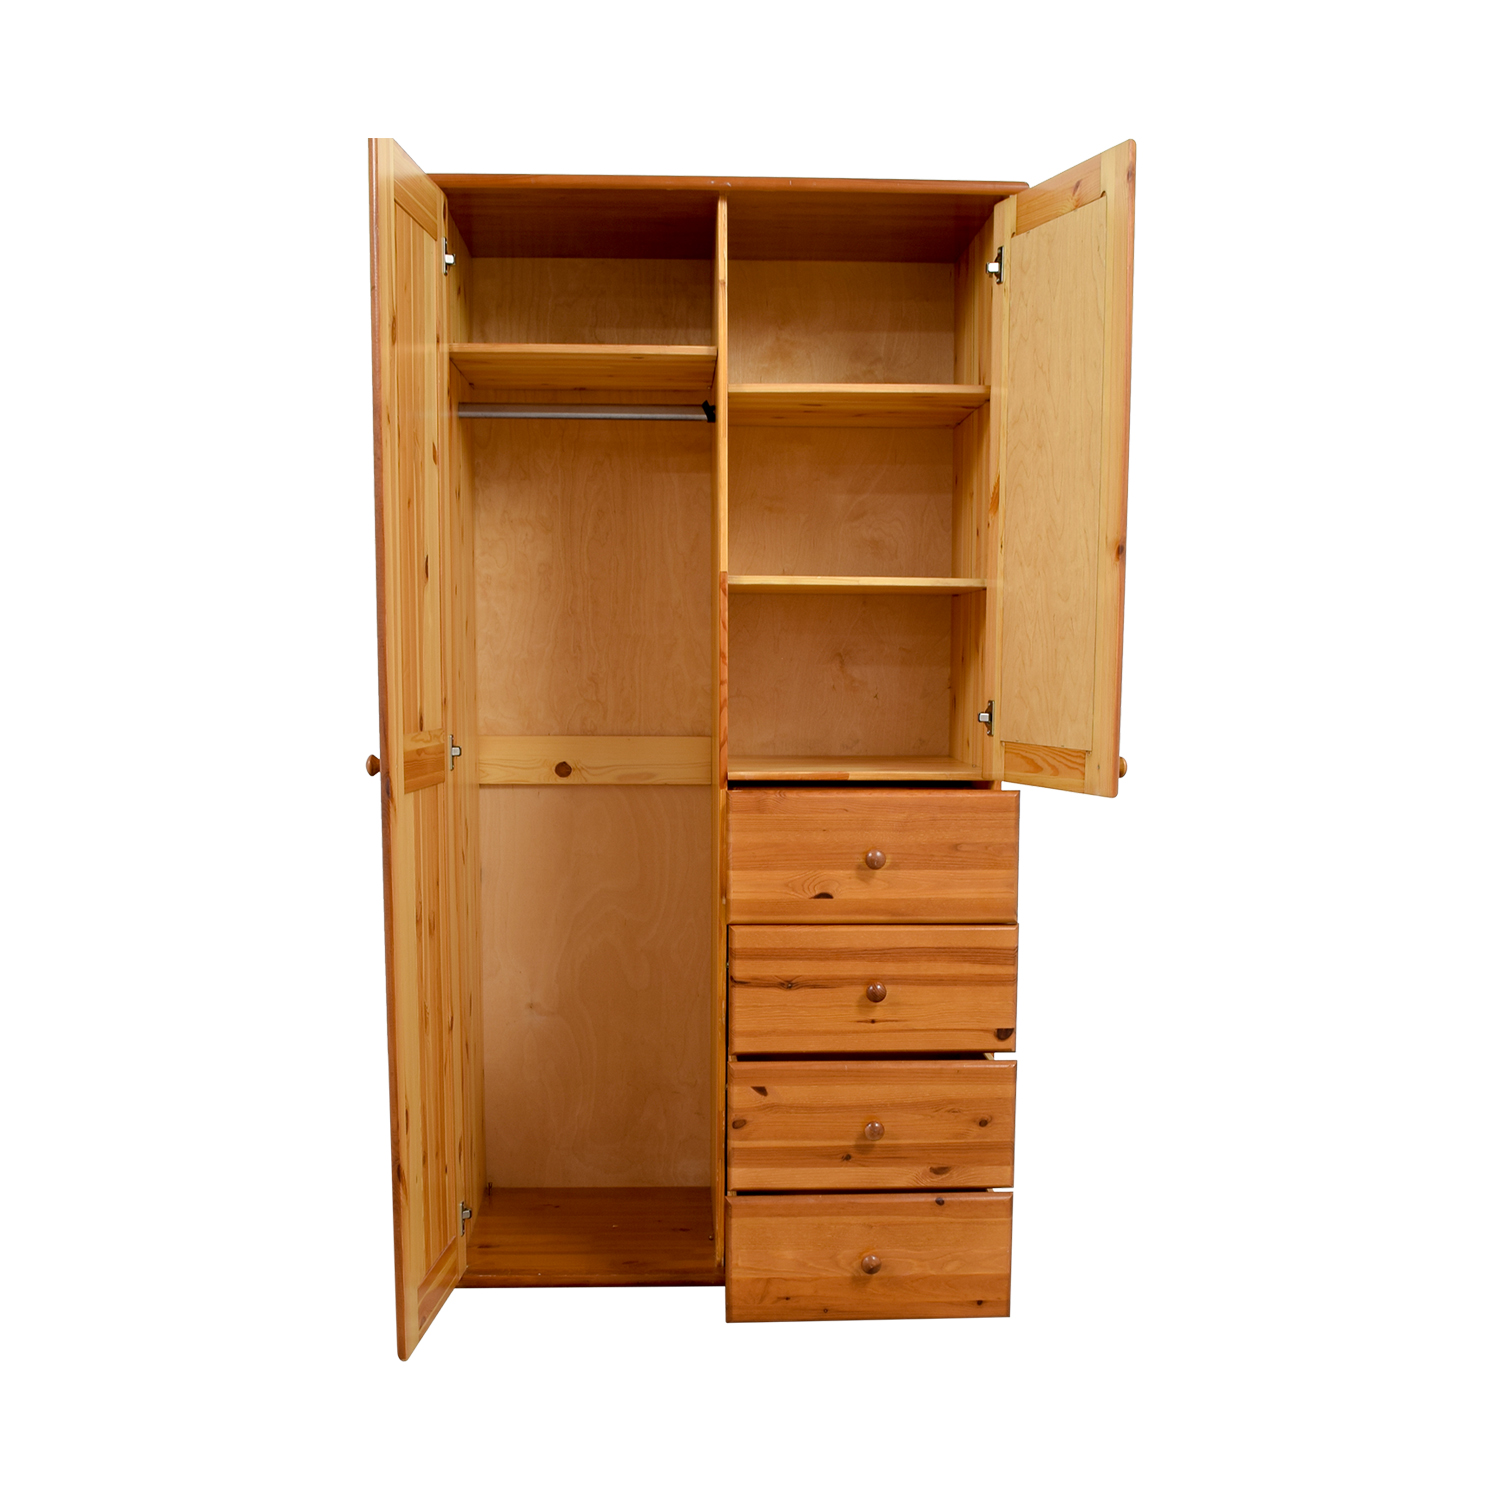 Wood Armoire with Rack Drawers and Shelves nyc